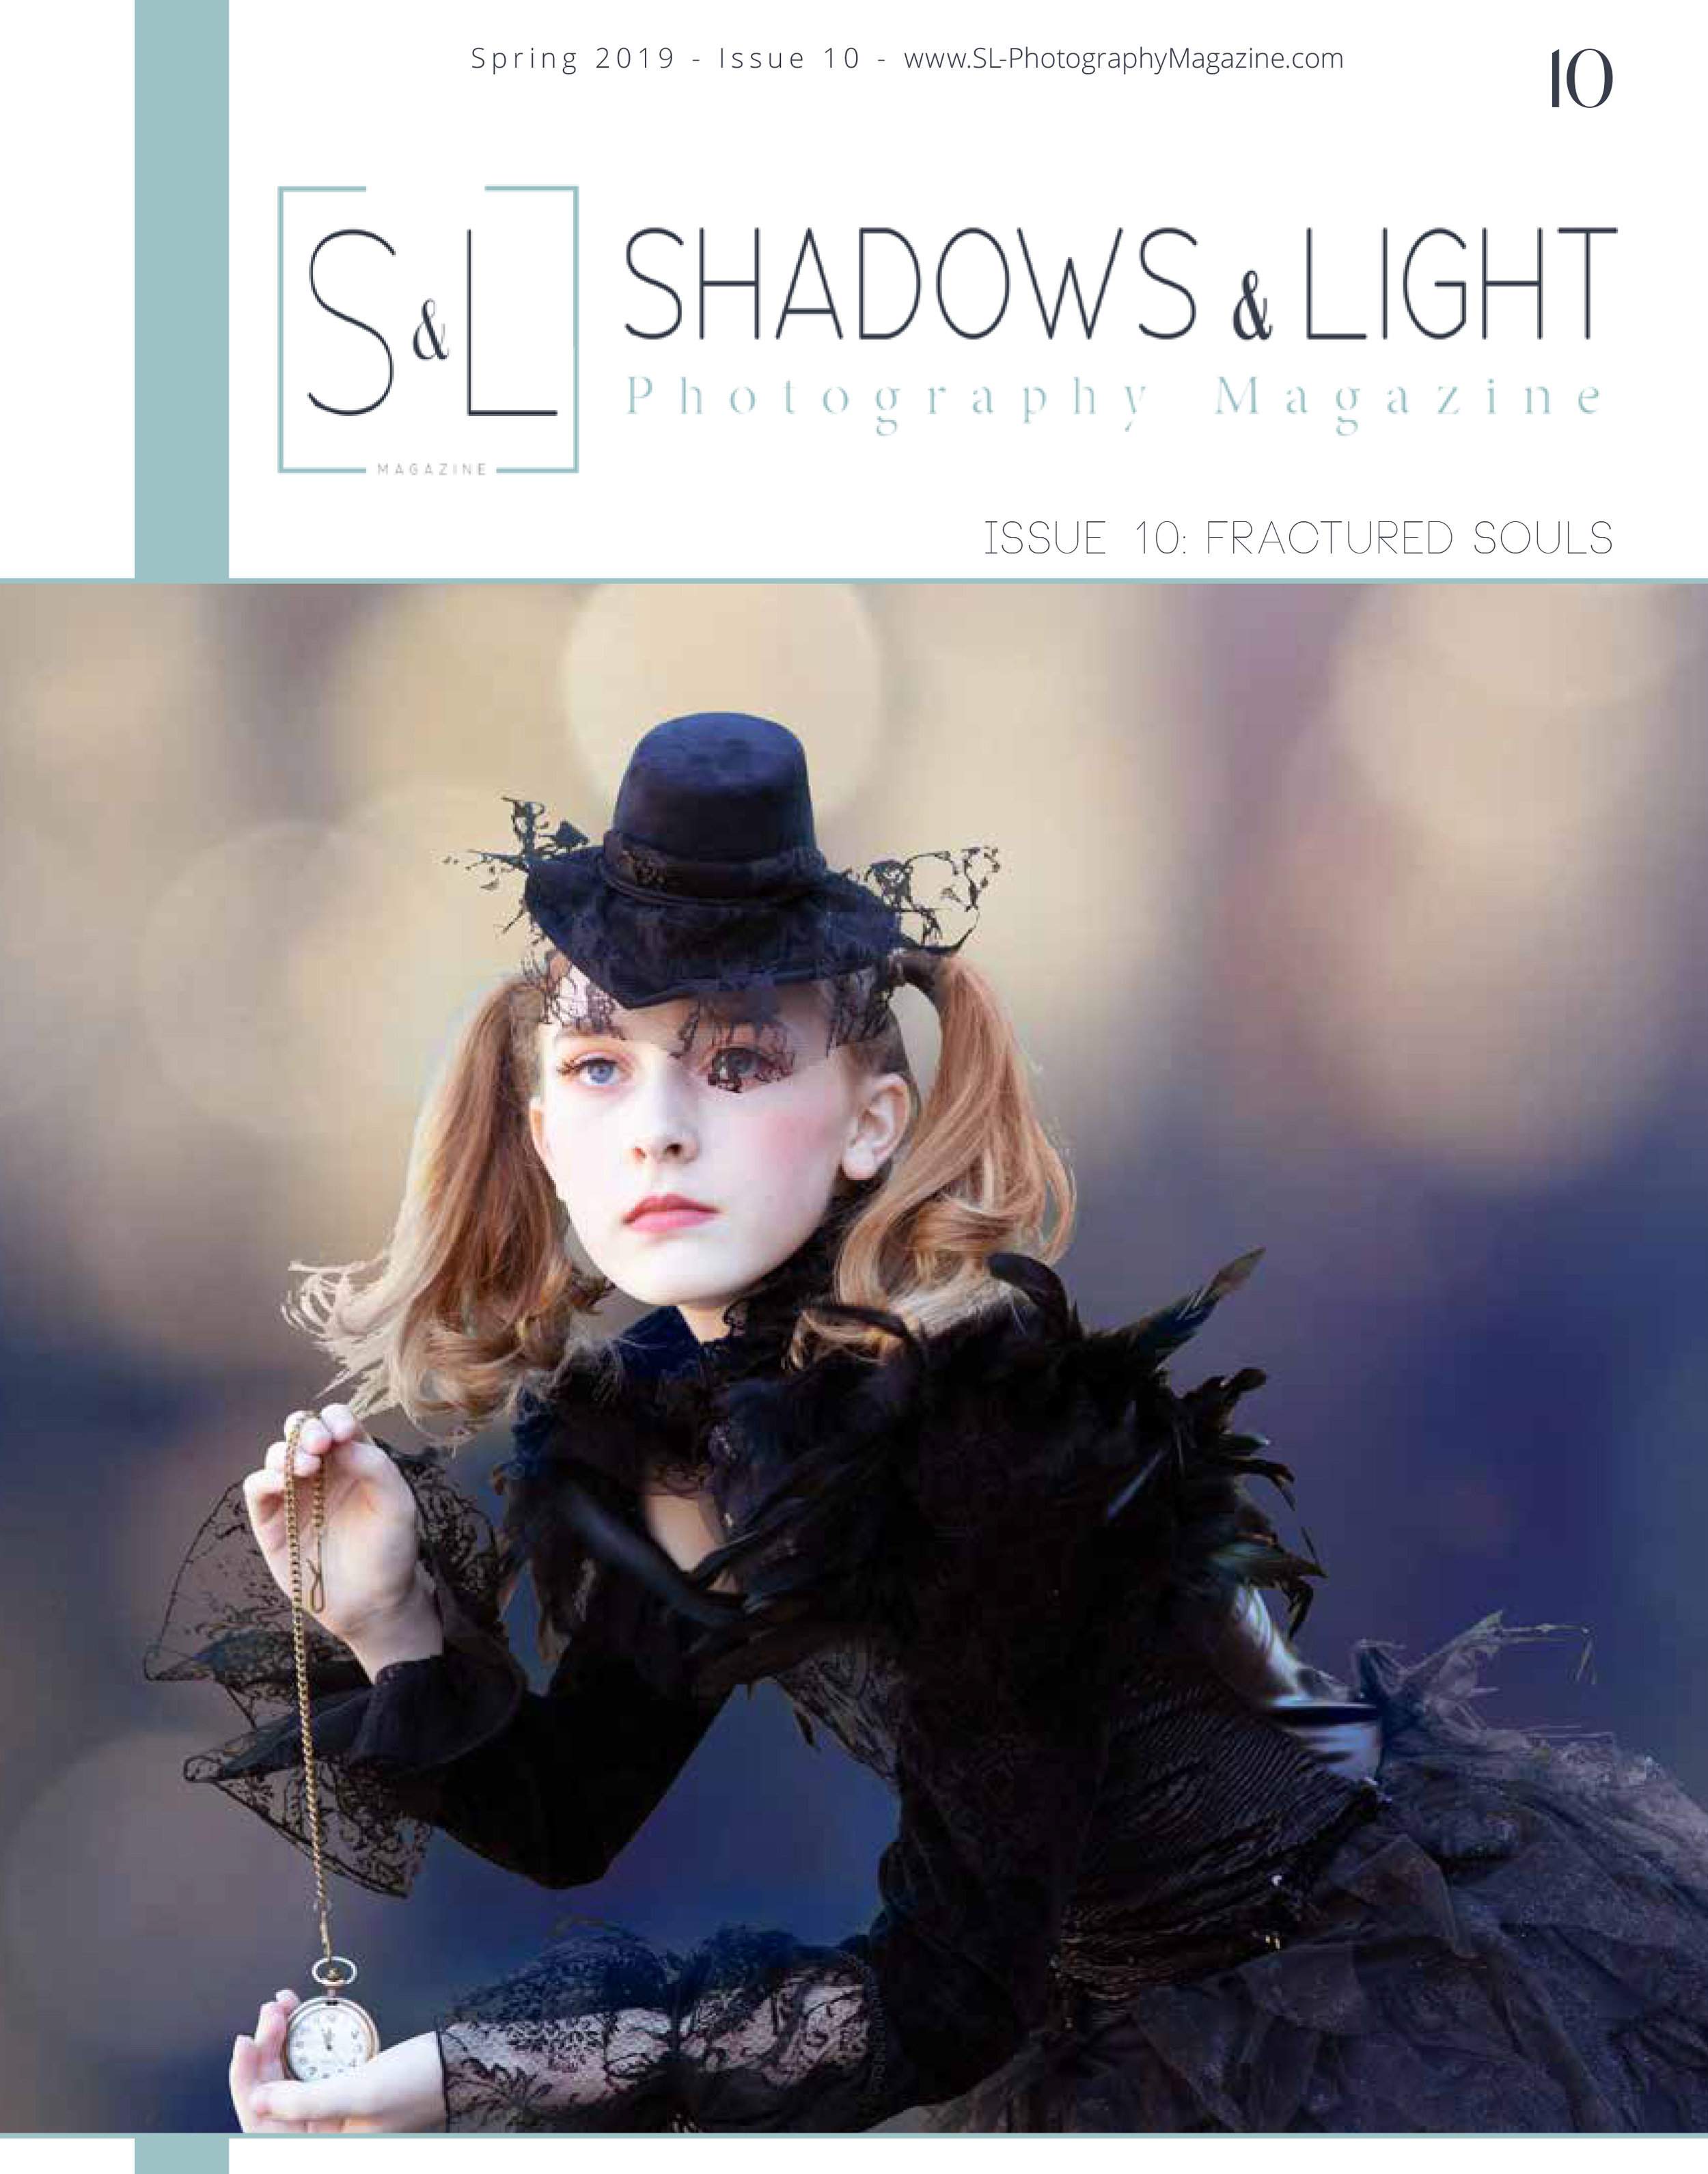 Shadows and Light Magazine - Issue 10